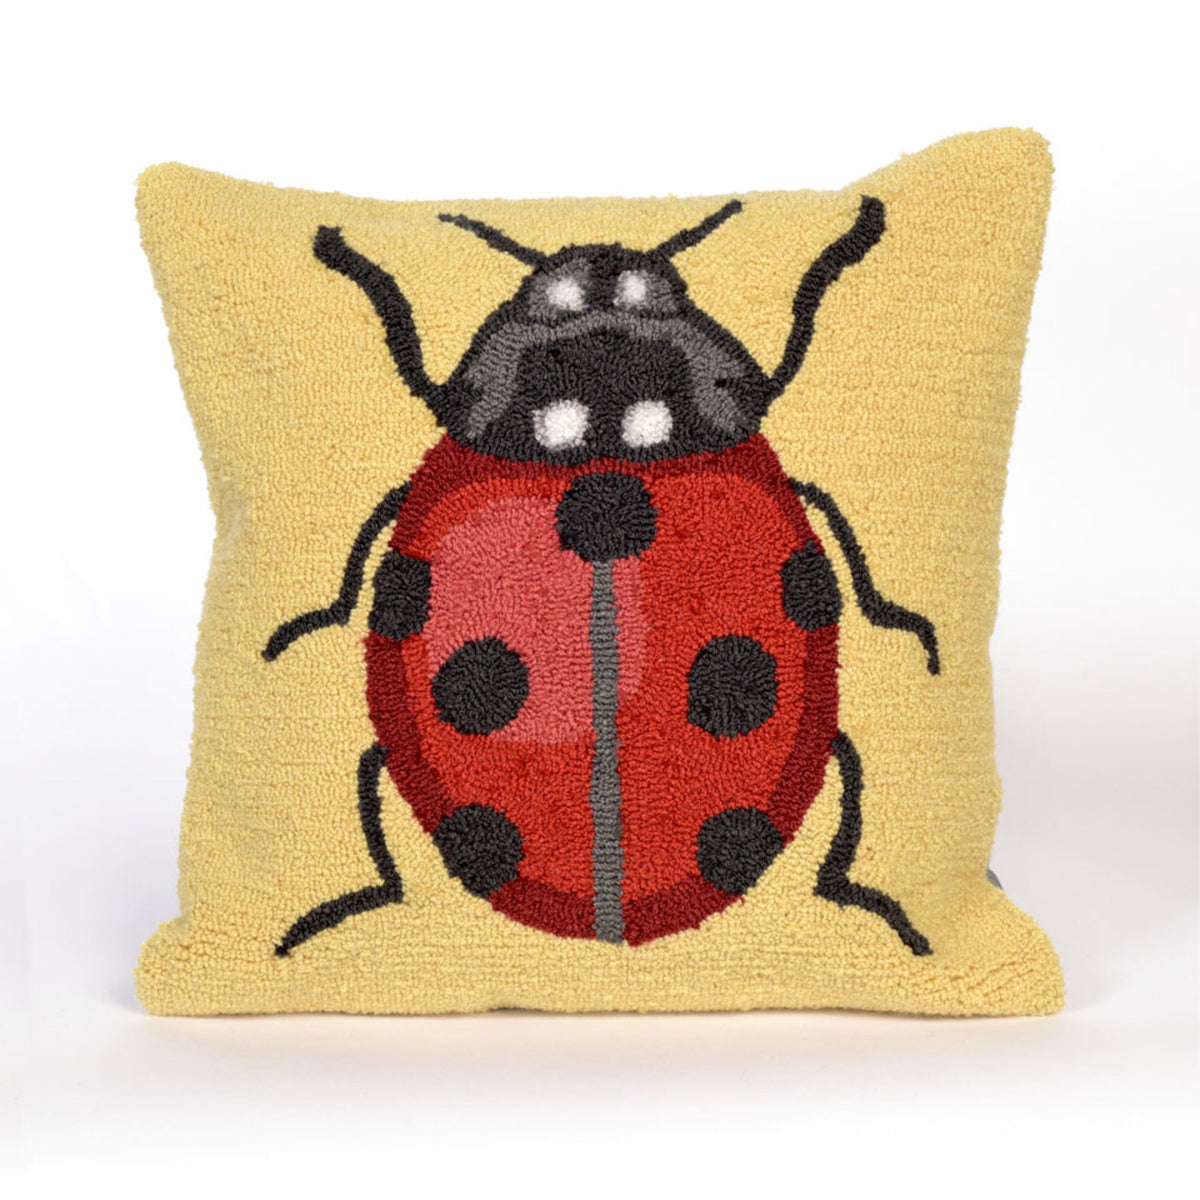 Frontporch Ladybug Yellow Pillows